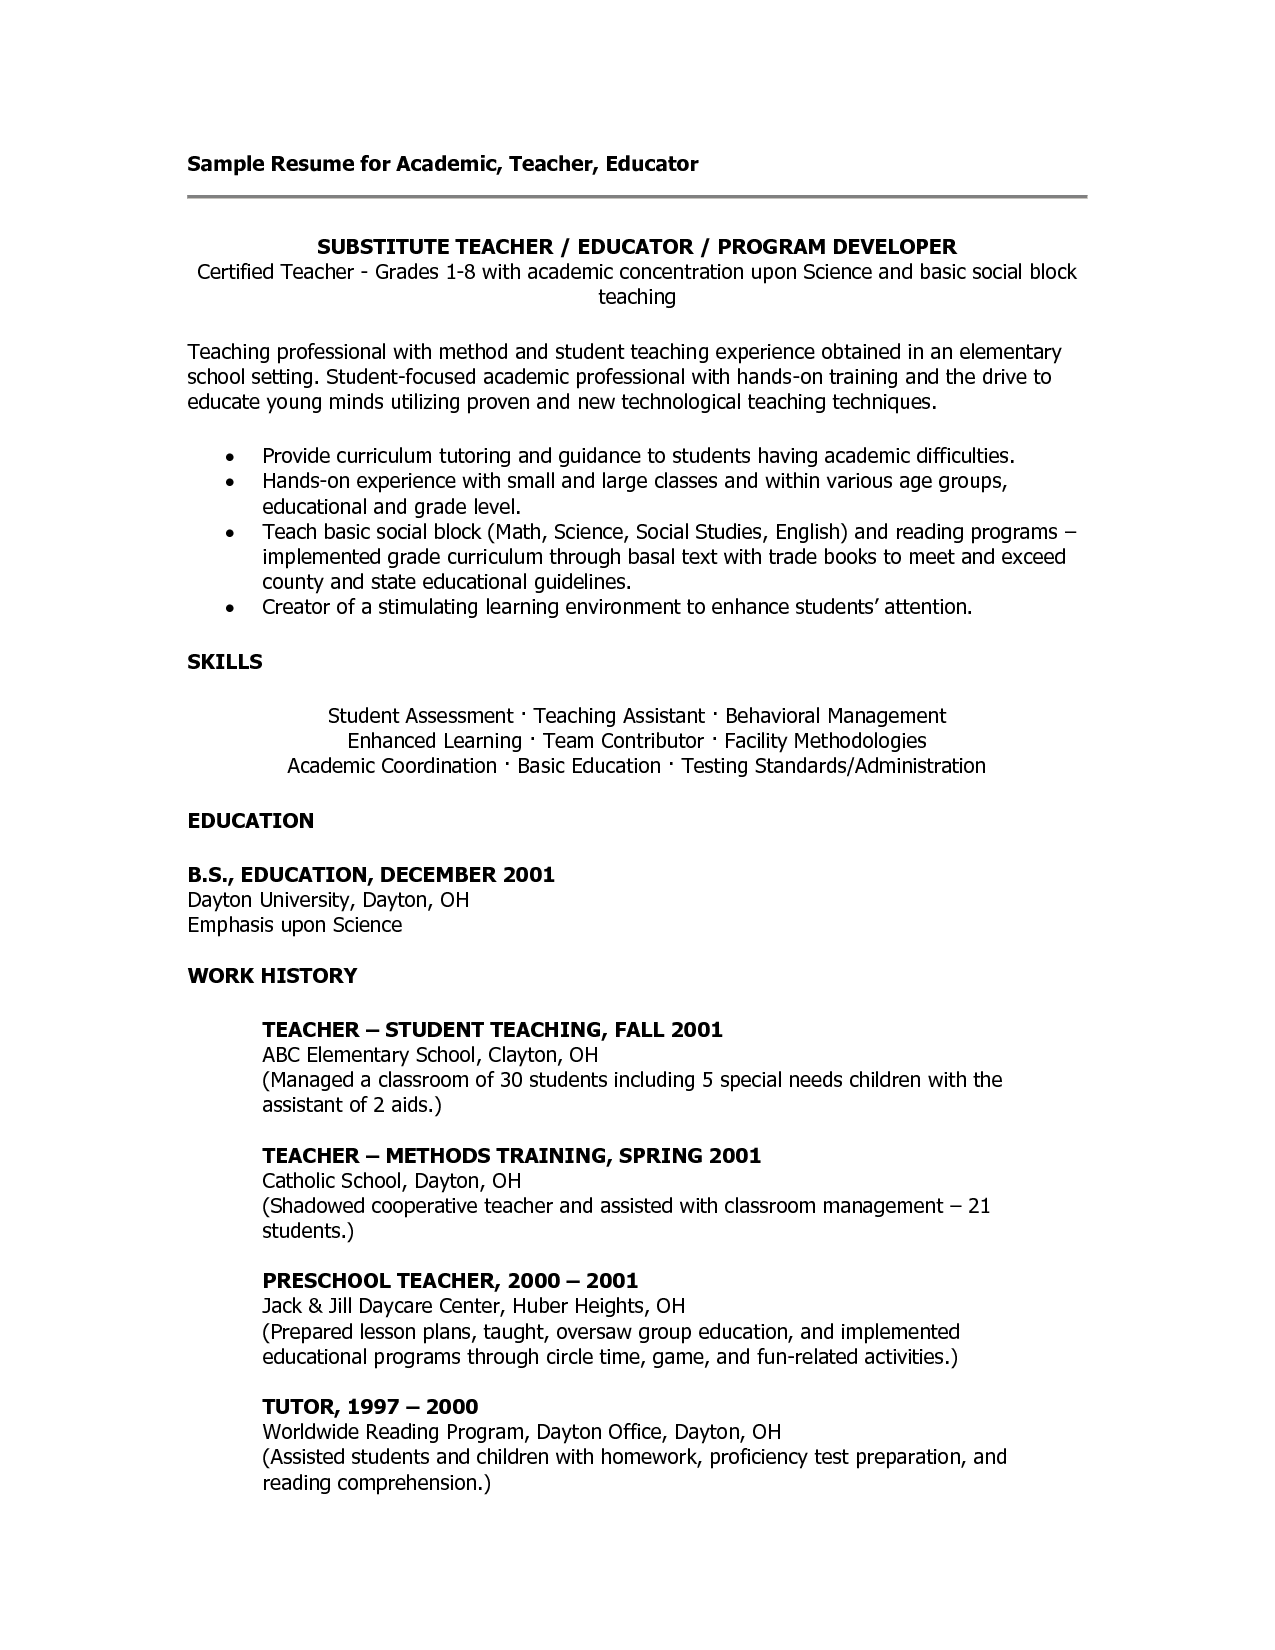 Substitute Teacher Resume Sample Teacher Resumes Substitute Teacher Resume